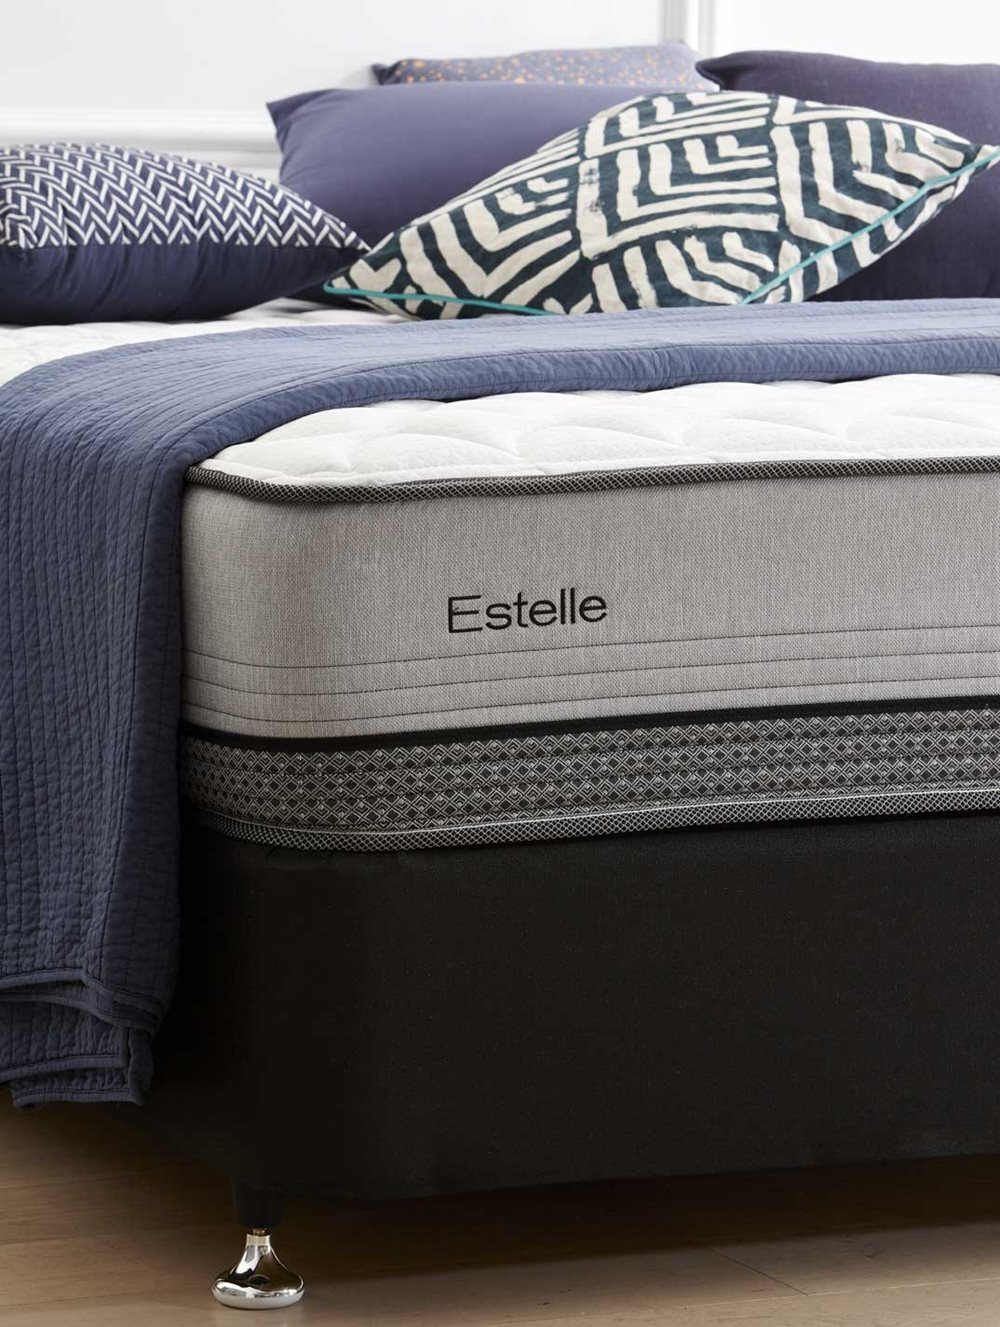 AVANT GARDE ESTELLE FIRM QB  MATTRESS  image 3